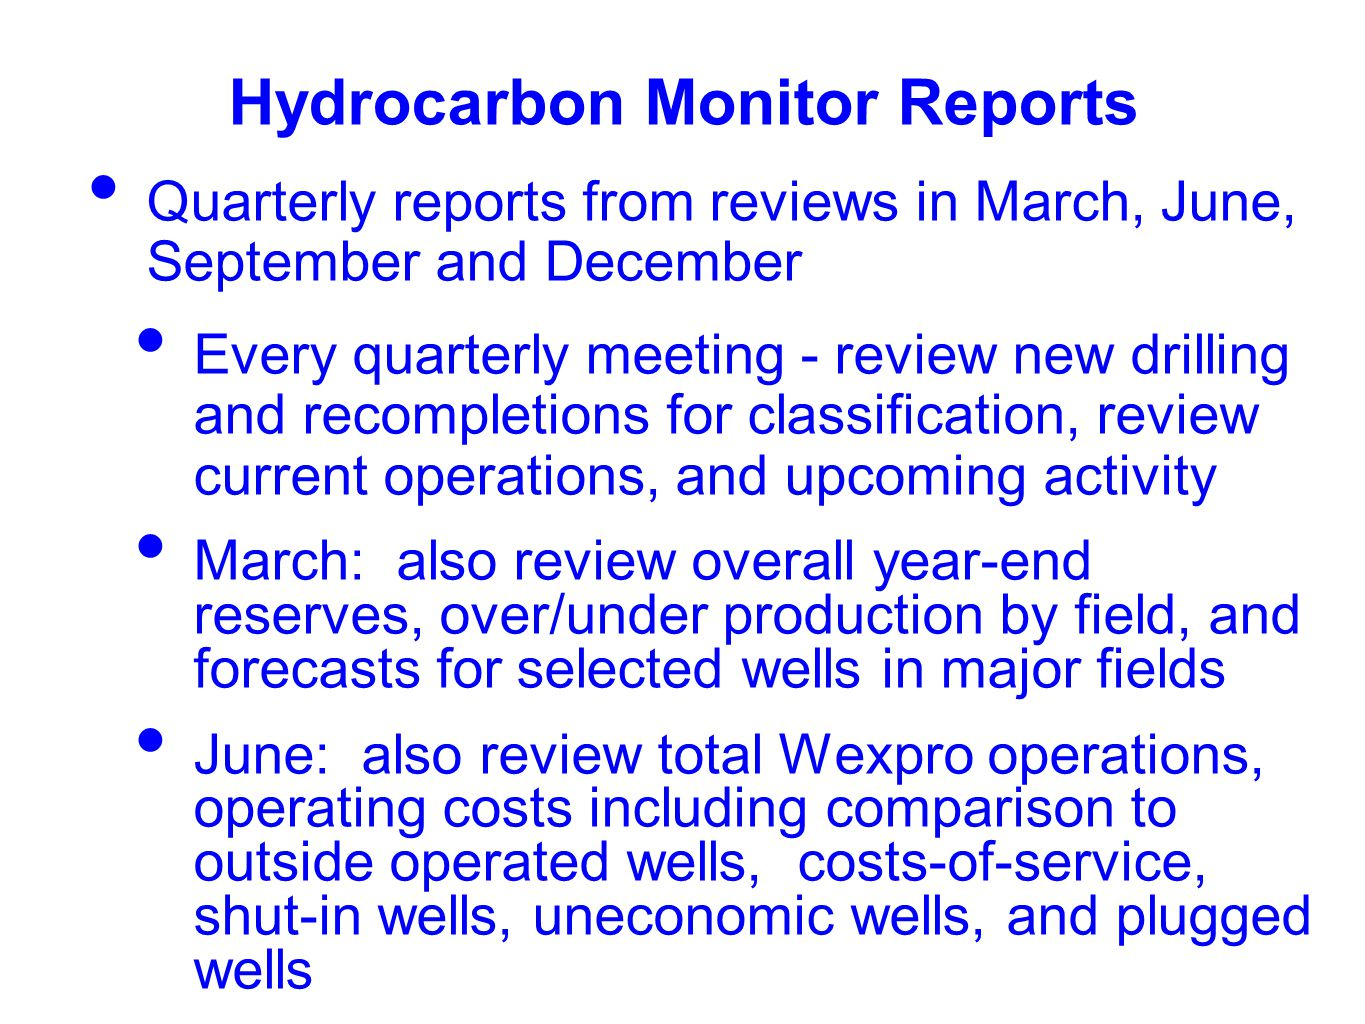 Hydrocarbon Monitor Reports Quarterly reports from reviews in March, June, September and December Every quarterly meeting - review new drilling and recompletions for classification, review current operations, and upcoming activity March: also review overall year-end reserves, over/under production by field, and forecasts for selected wells in major fields June: also review total Wexpro operations, operating costs including comparison to outside operated wells, costs-of-service, shut-in wells, uneconomic wells, and plugged wells